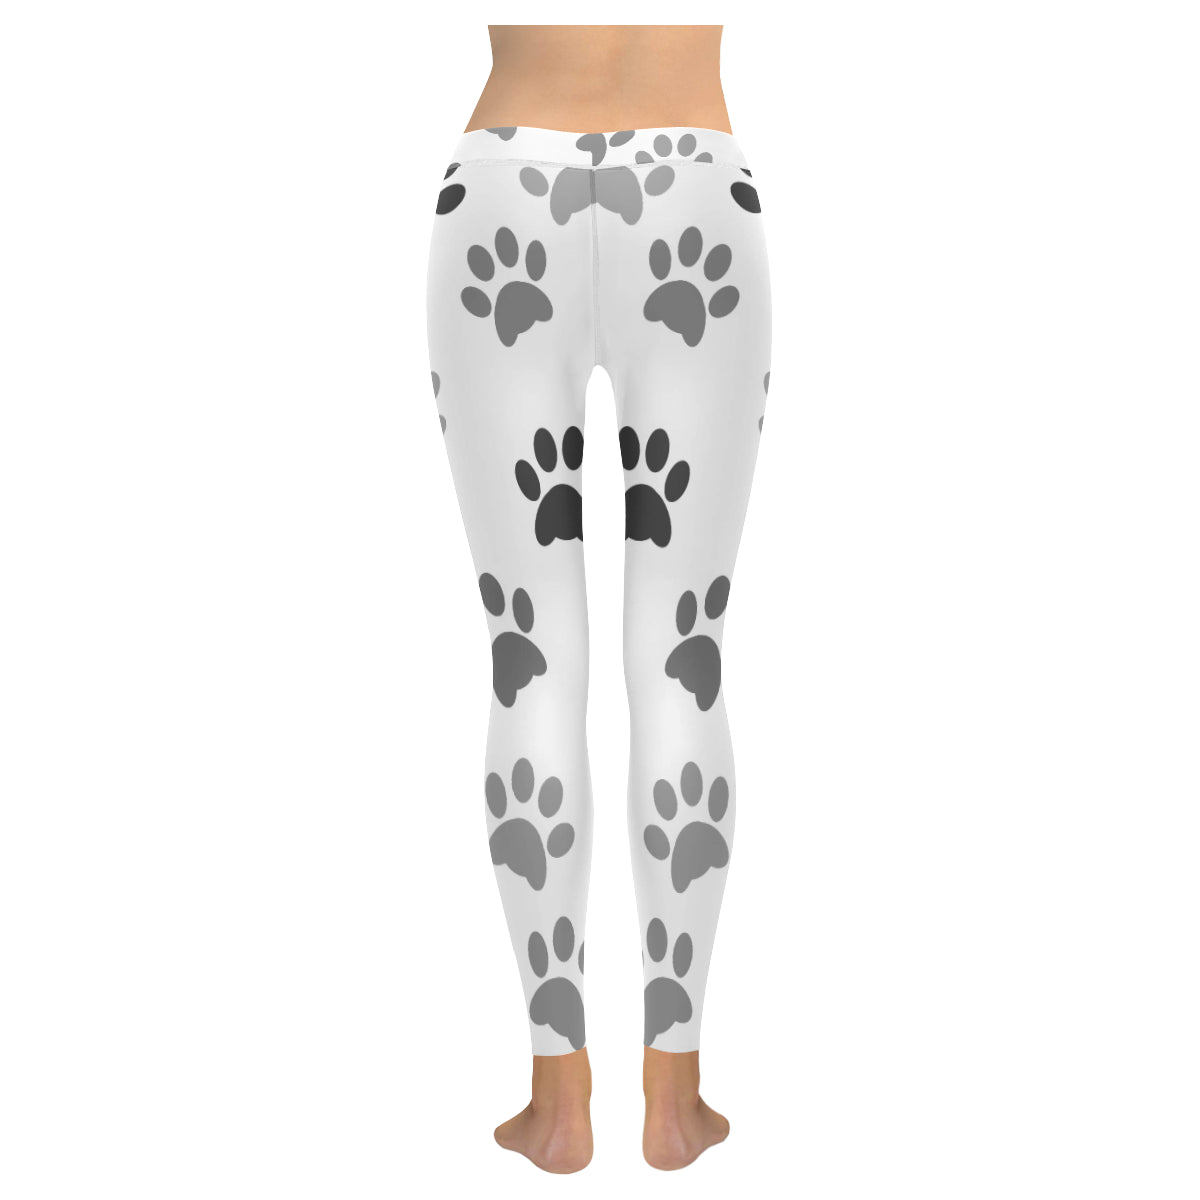 Legging au design pattes de chat dos